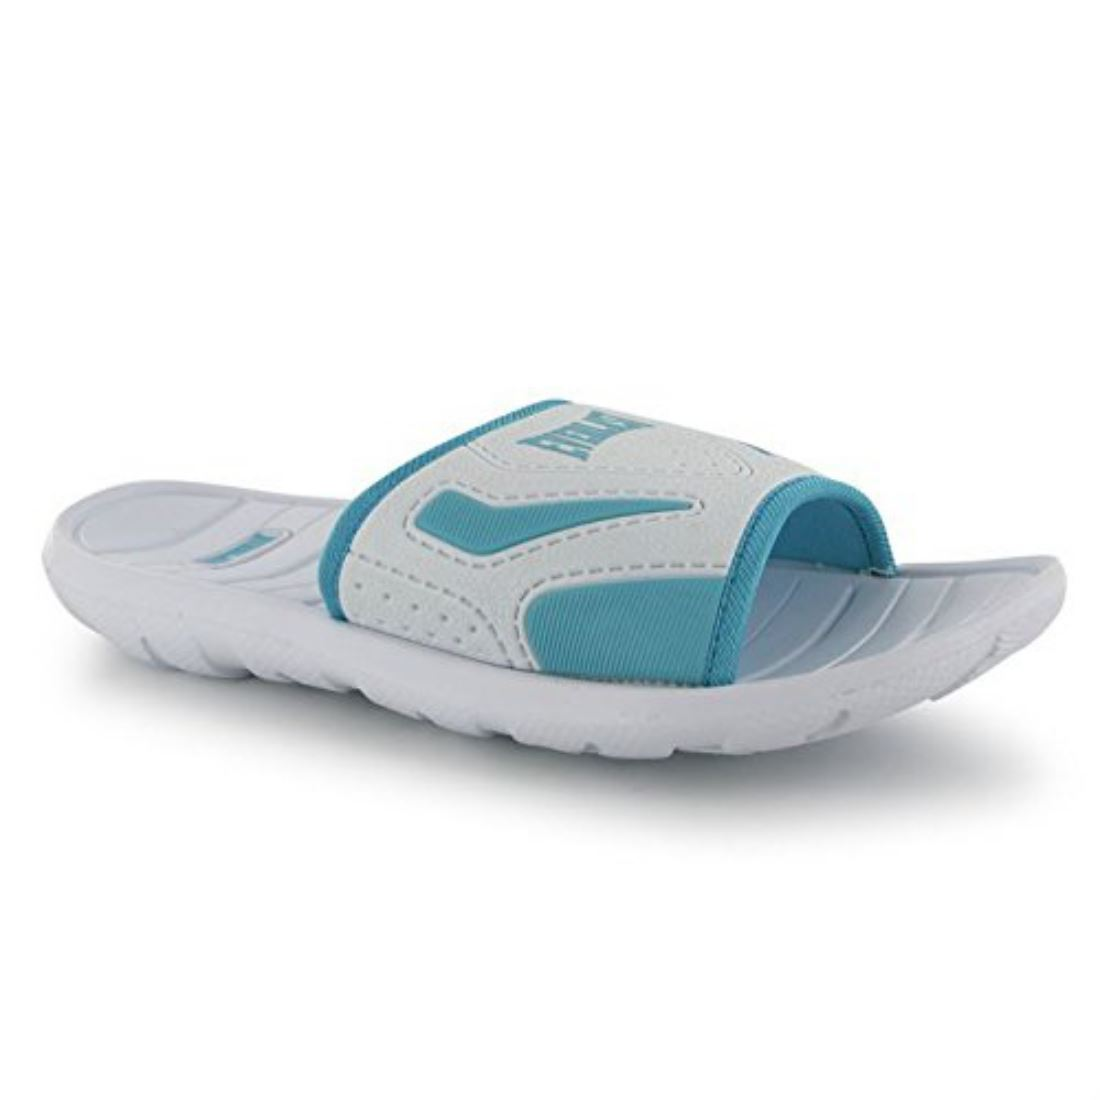 Everlast Kids Junior Pool Shoes Boys Water Swimming Shower Beach Sport Sandals Ebay